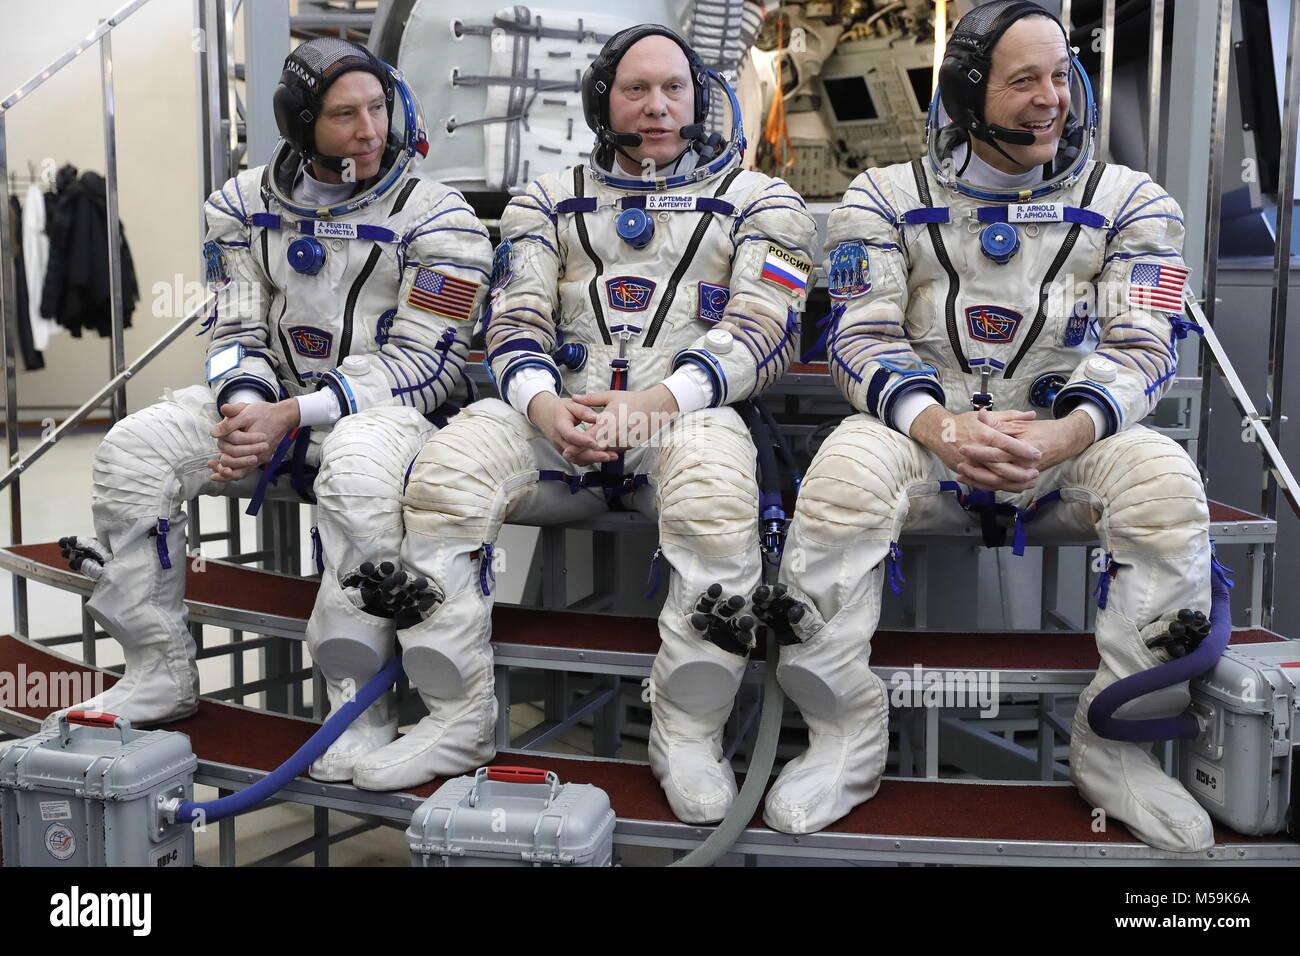 Moscow Region, Roscosmos cosmonaut Oleg Artemyev (C) and NASA astronauts Andrew J. Feustel (L), Richard Arnold (R), - Stock Image